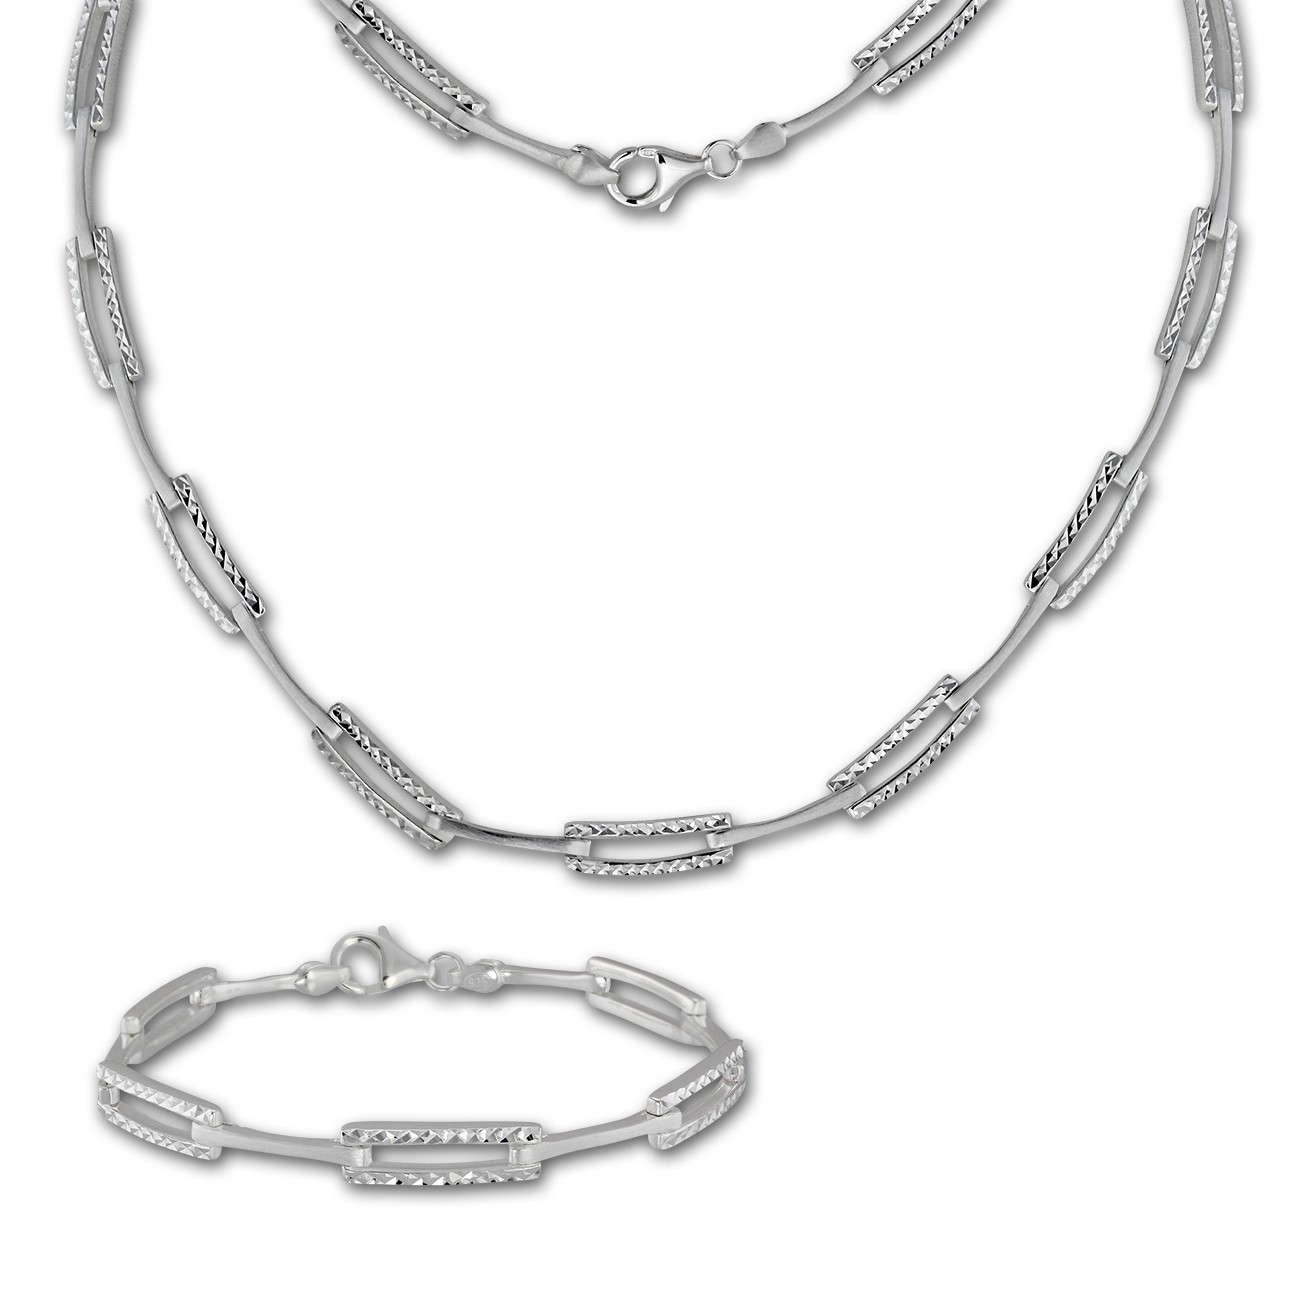 Collier Schmuck Silberdream Schmuck Set Diamantiert Collier And Armband